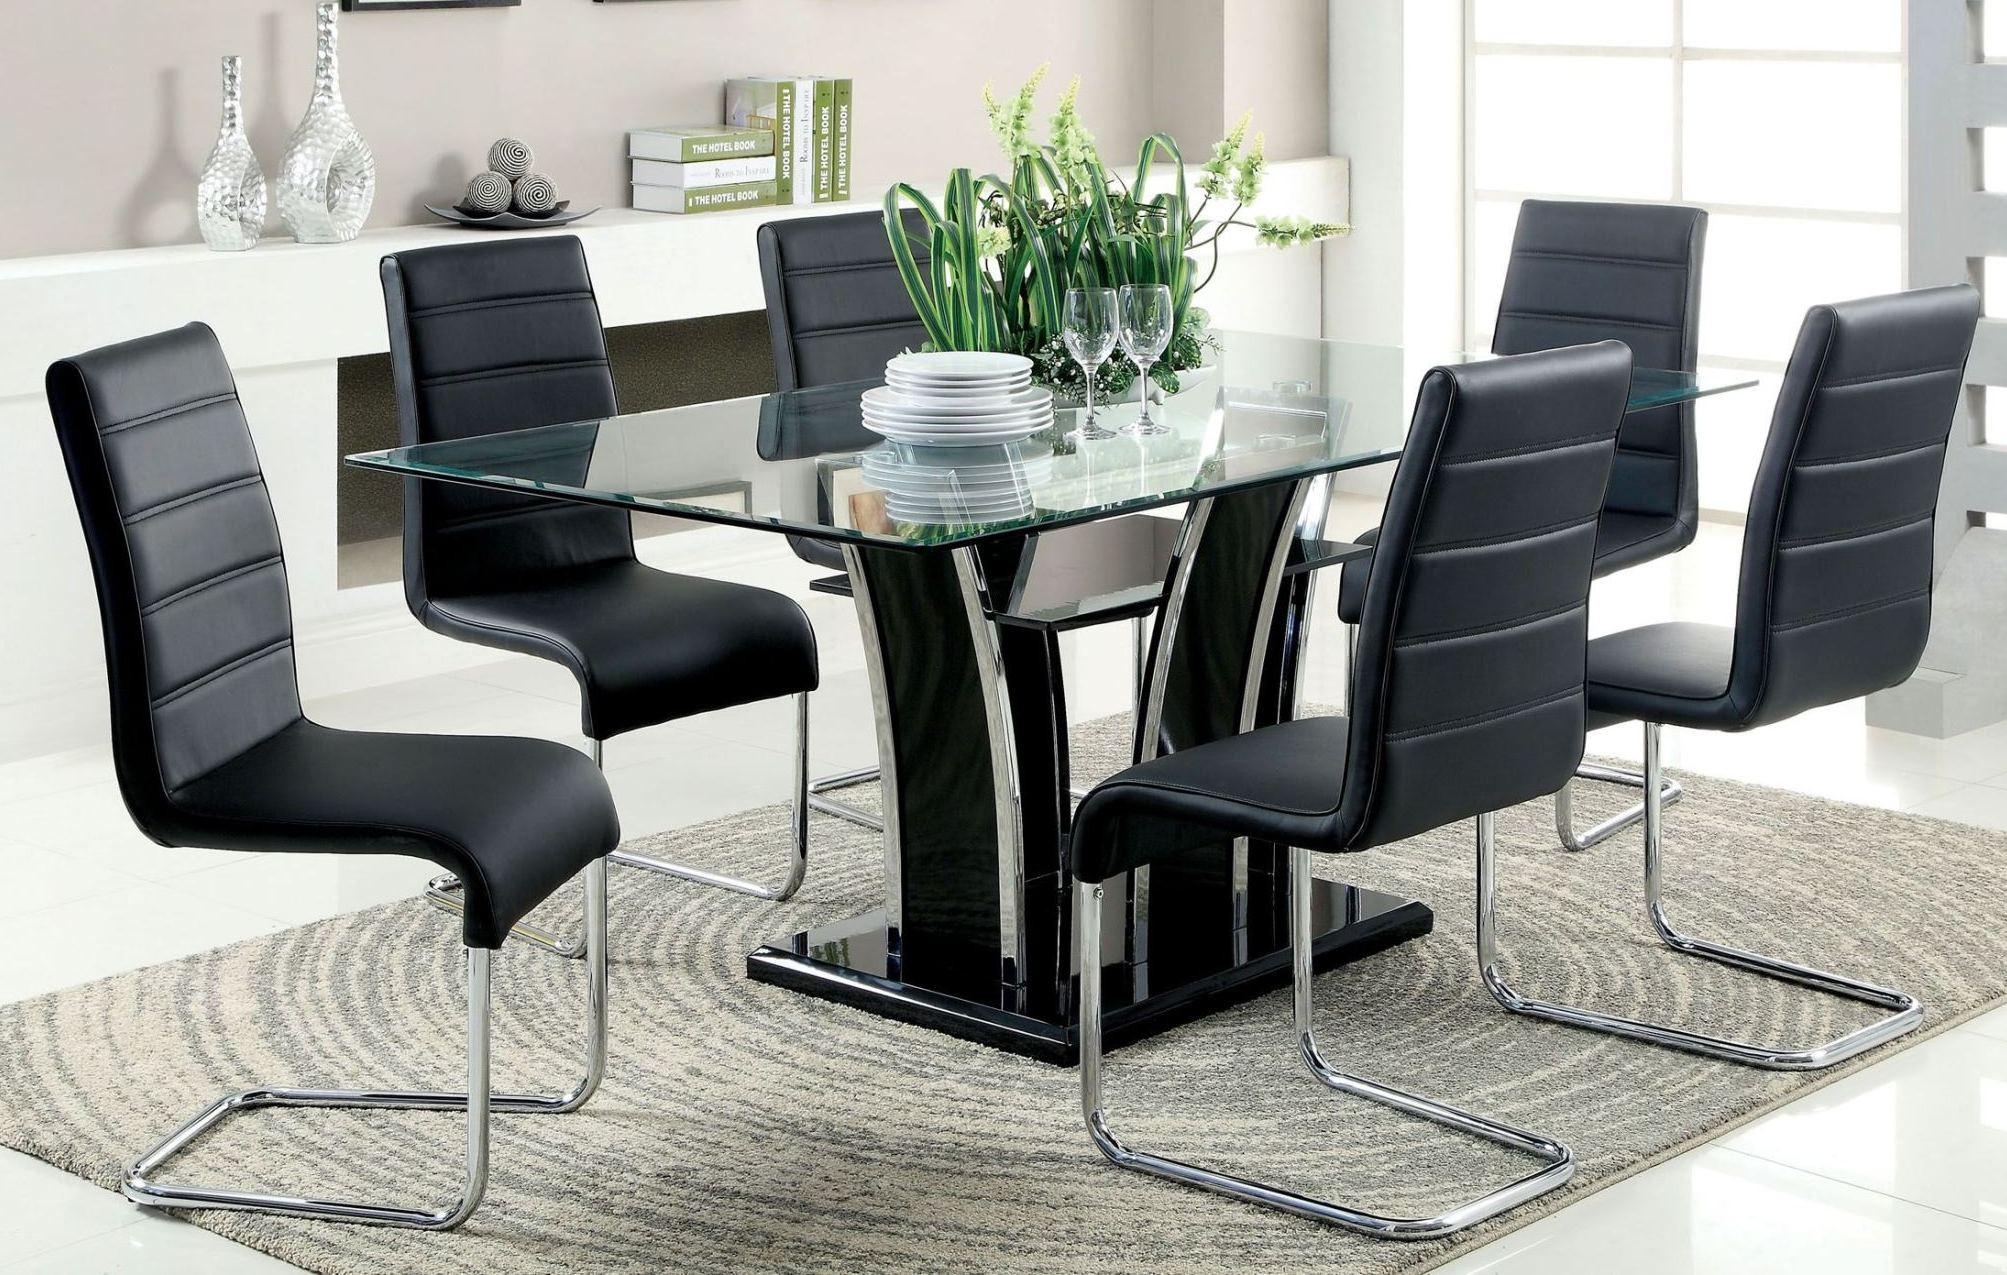 Glass Dining Table Set For 2: Glenview Black Glass Top Dining Room Set From Furniture Of